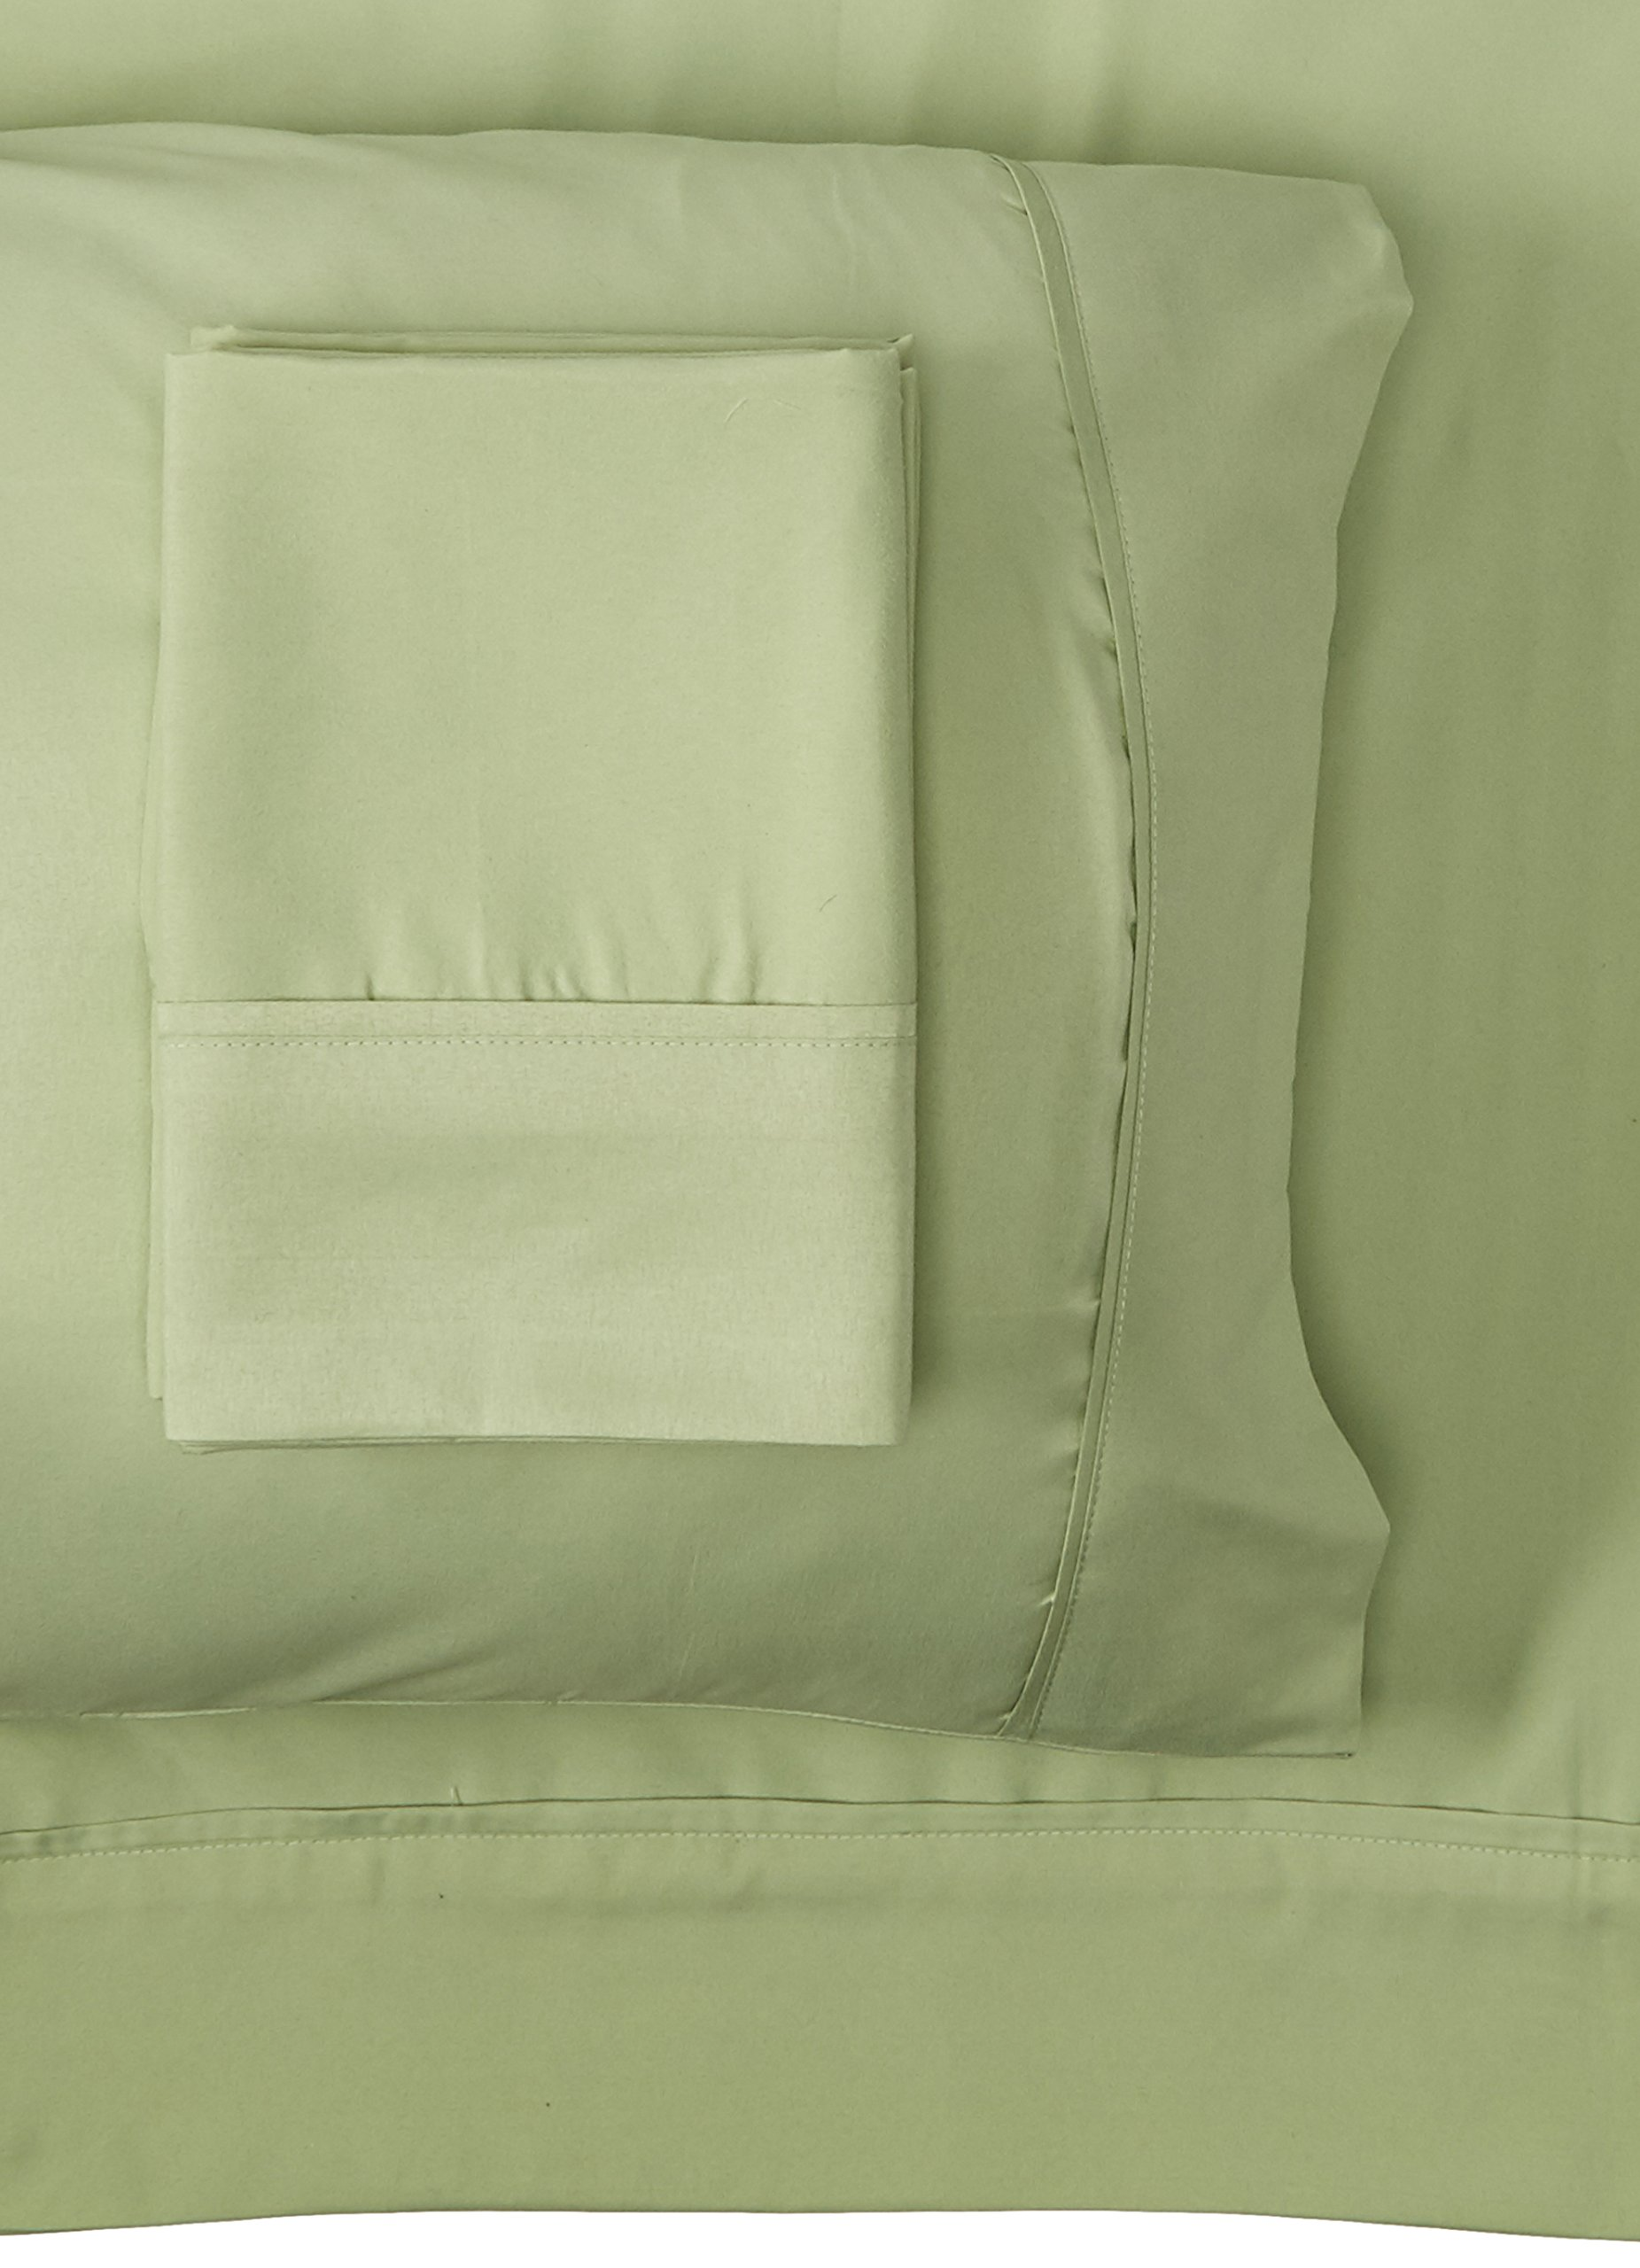 Spirit Linen 6 Piece Everyday Essentials 1800 Series Sheet Set, Queen, Sage